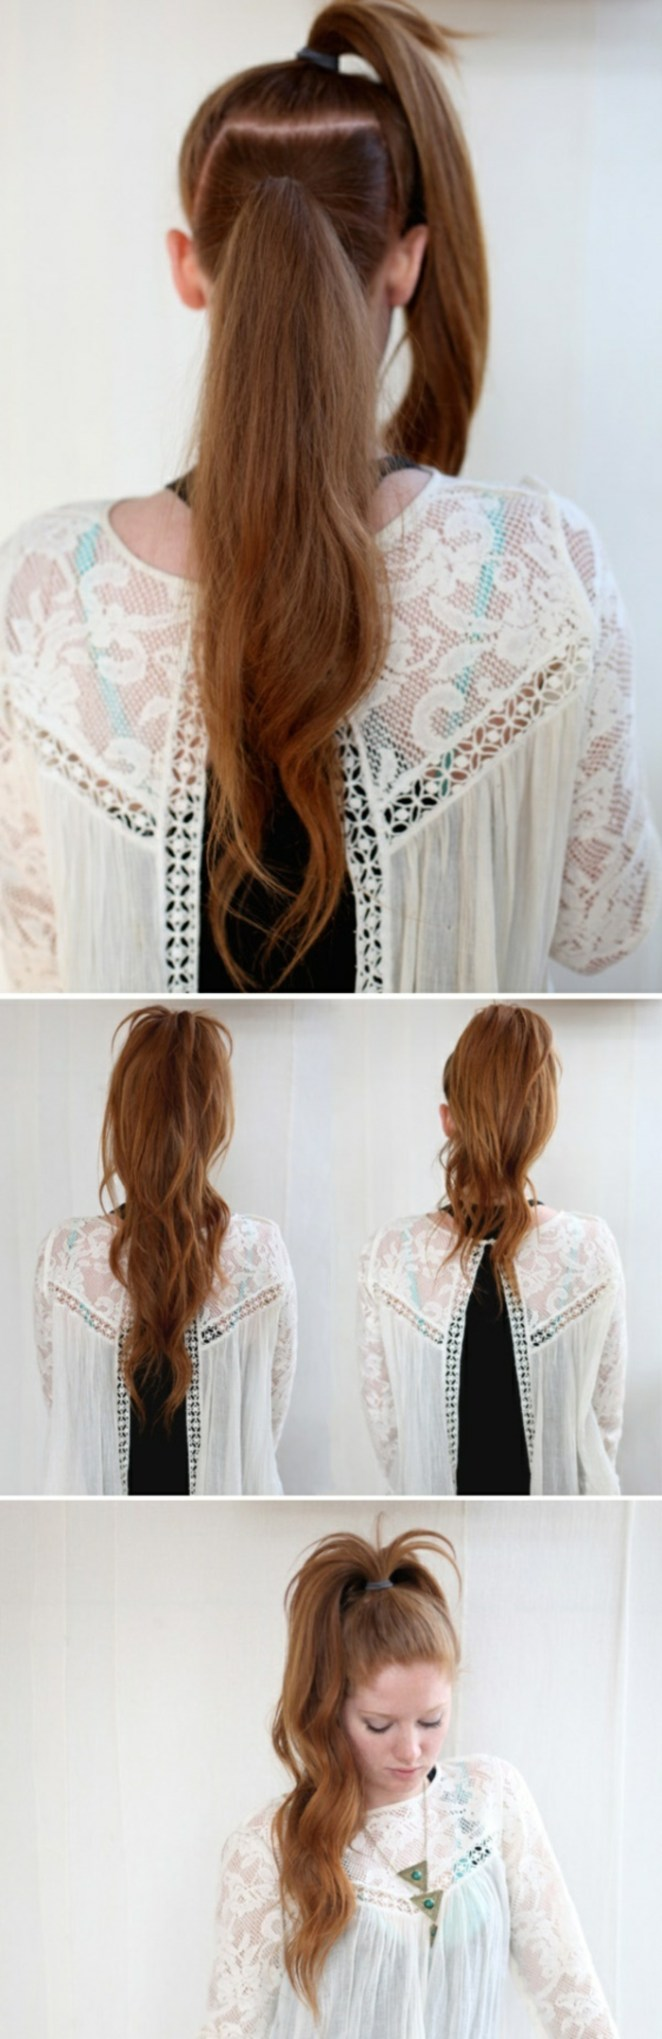 a girl with red hair, beautiful hairstyles for long hair, four photos of the hairstyle